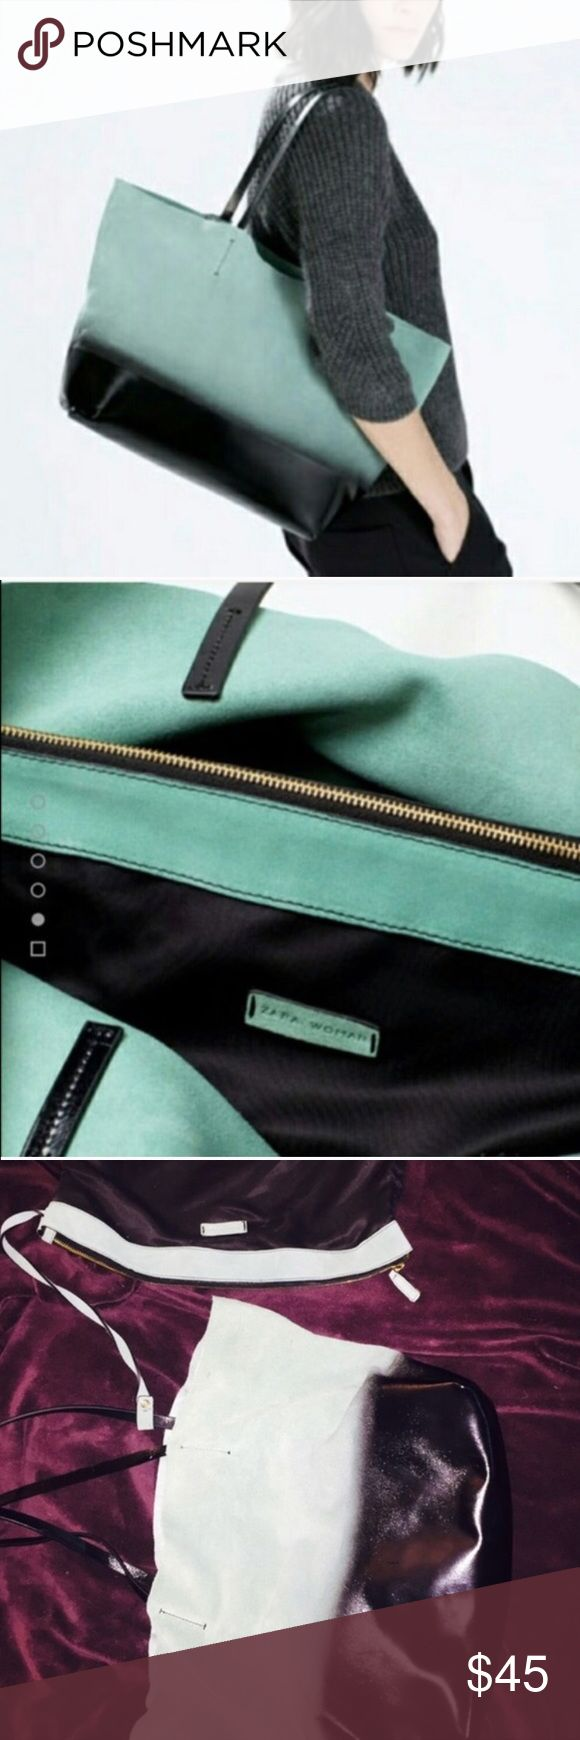 ZARA Purse Never used, comes with full-size make up bag hooked inside. The color is an elegant turquoise/Tiffany's blue with black color on the bottom. Feels like suede on top and a leather on bottom. Zara Bags